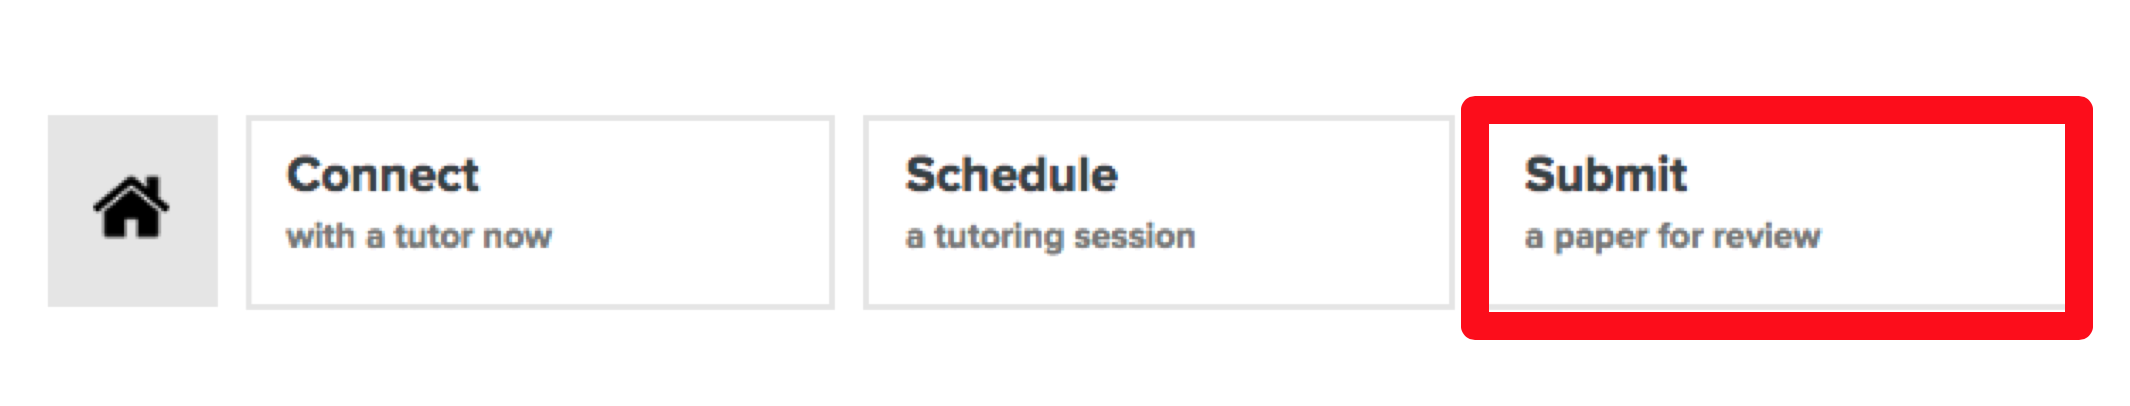 This is an image of the tutor.com options of Connect, Schedule, and Submit. The Submit option is called out with a red box around it.